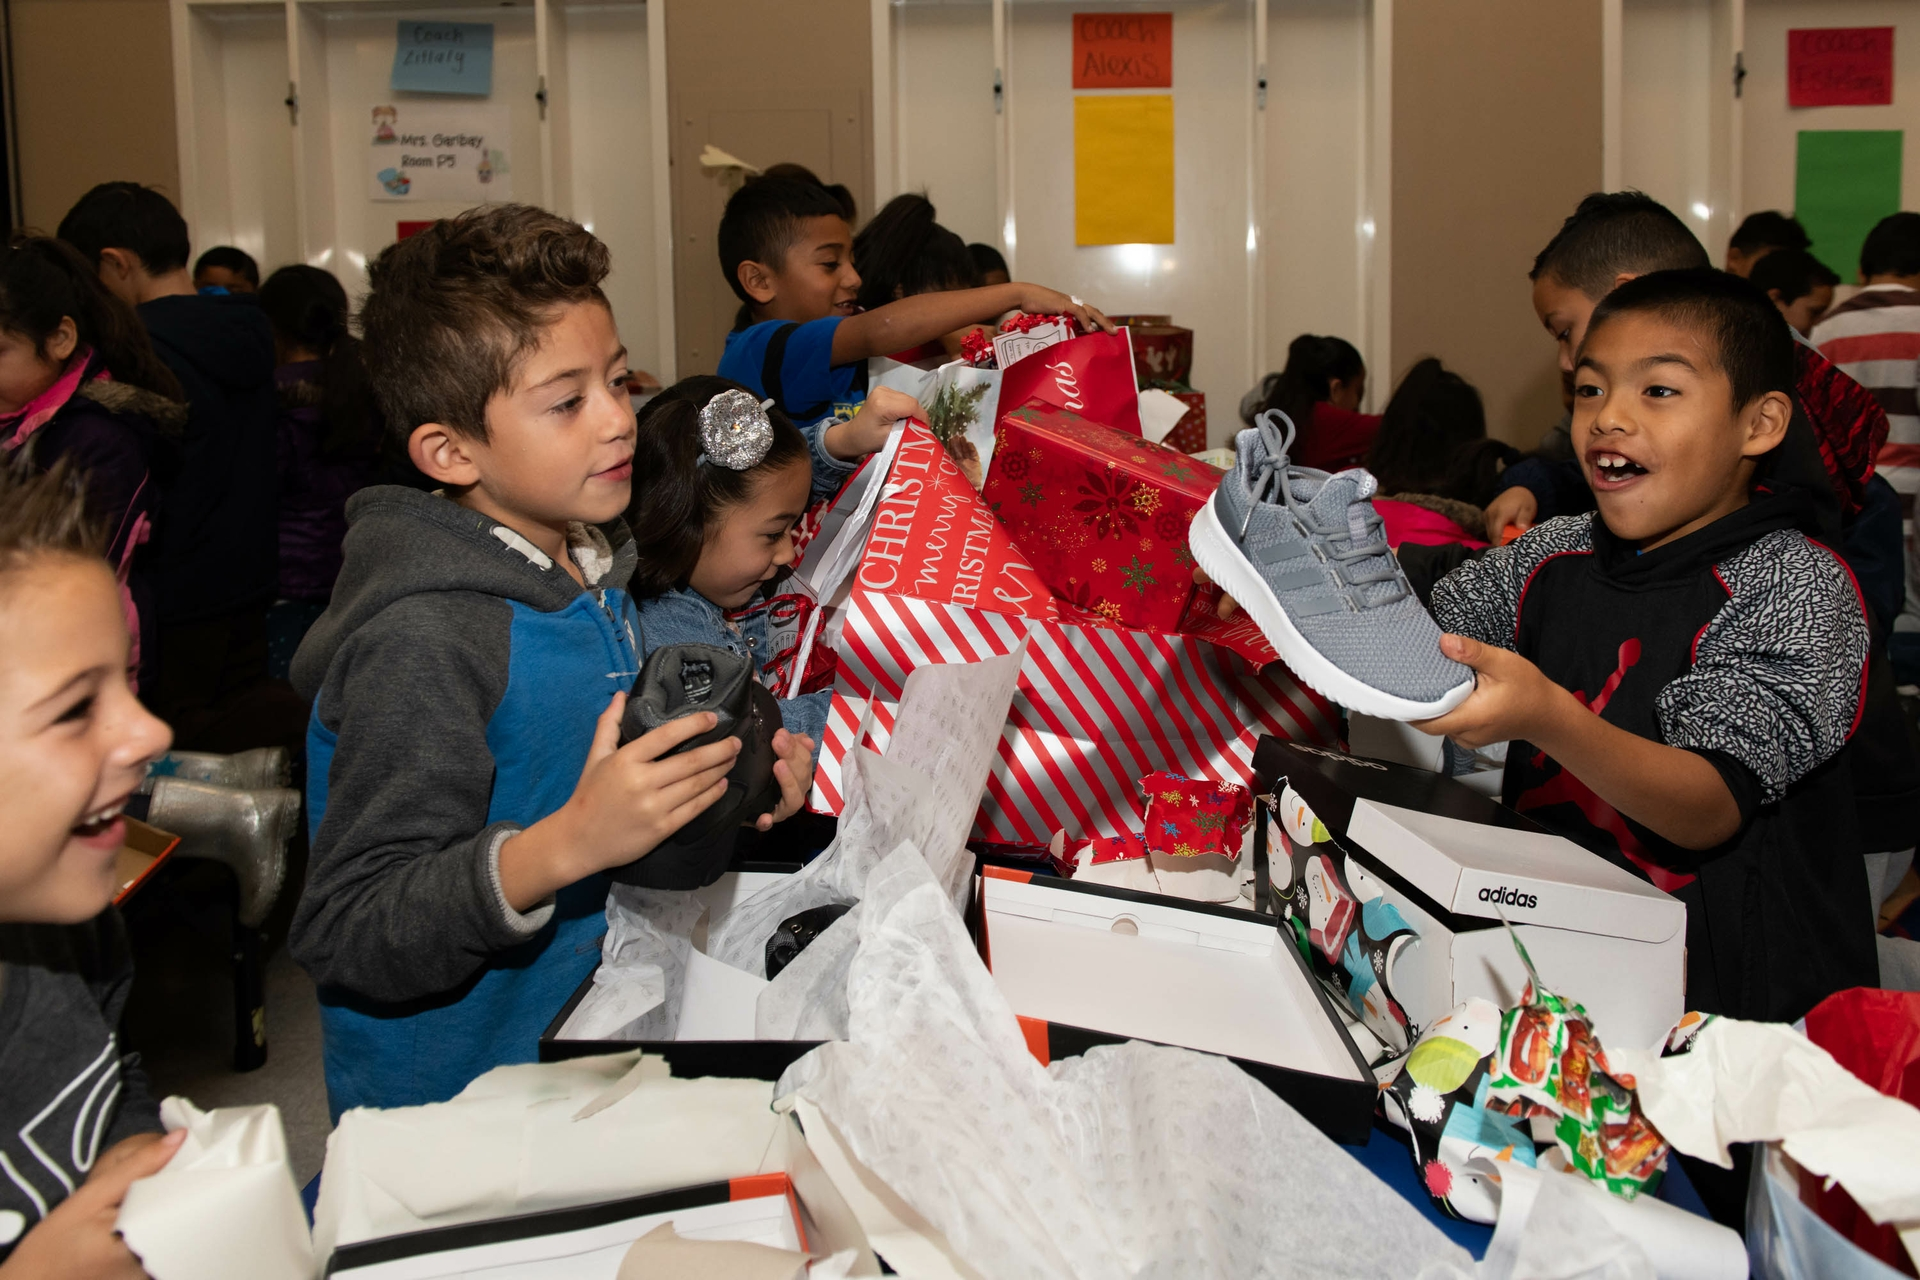 Edison employees partner with nonprofit Shoes That Fit and donate shoes to kids in need.